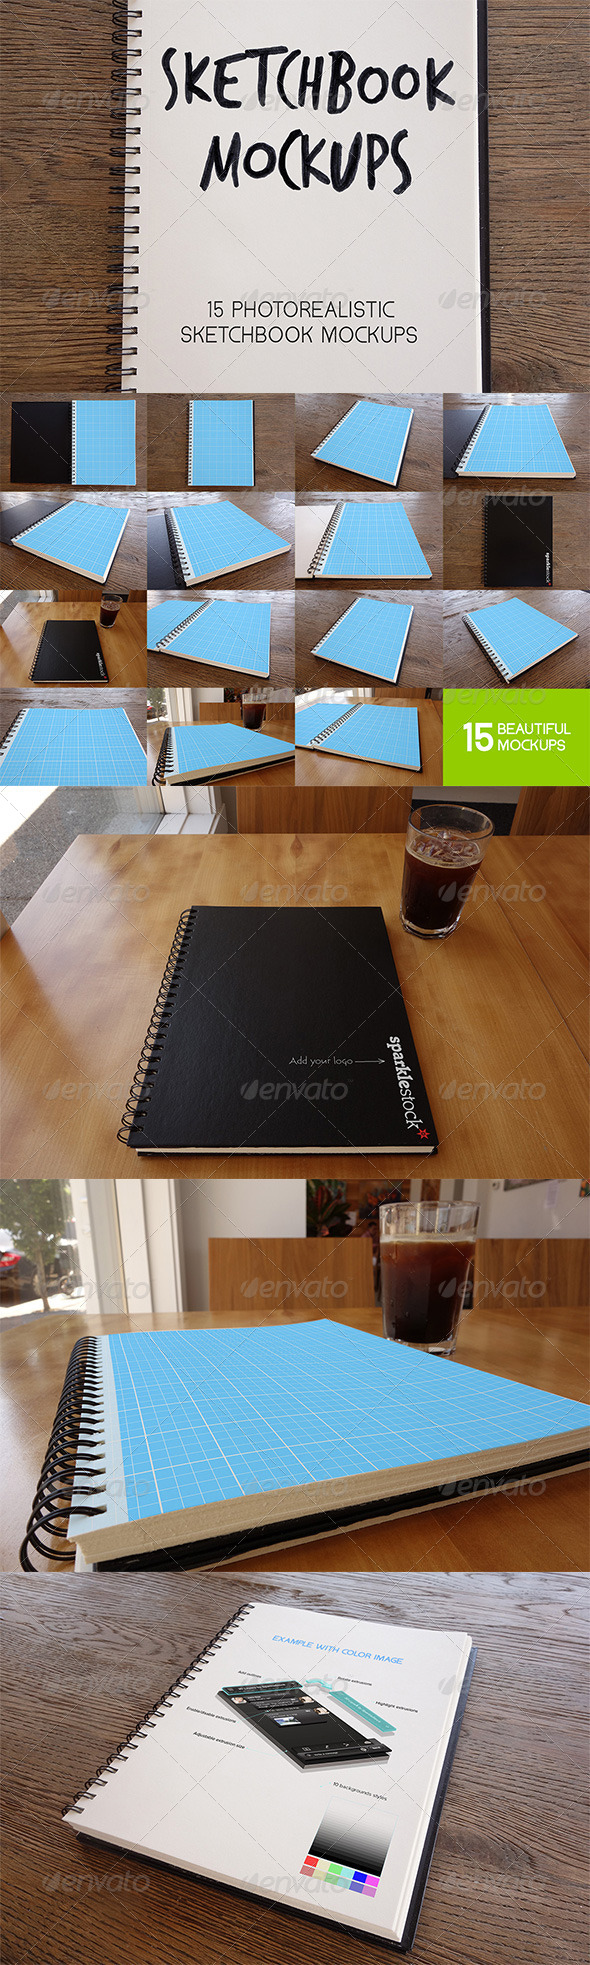 GraphicRiver 15 Photorealistic Sketchbook Mockups 5332707